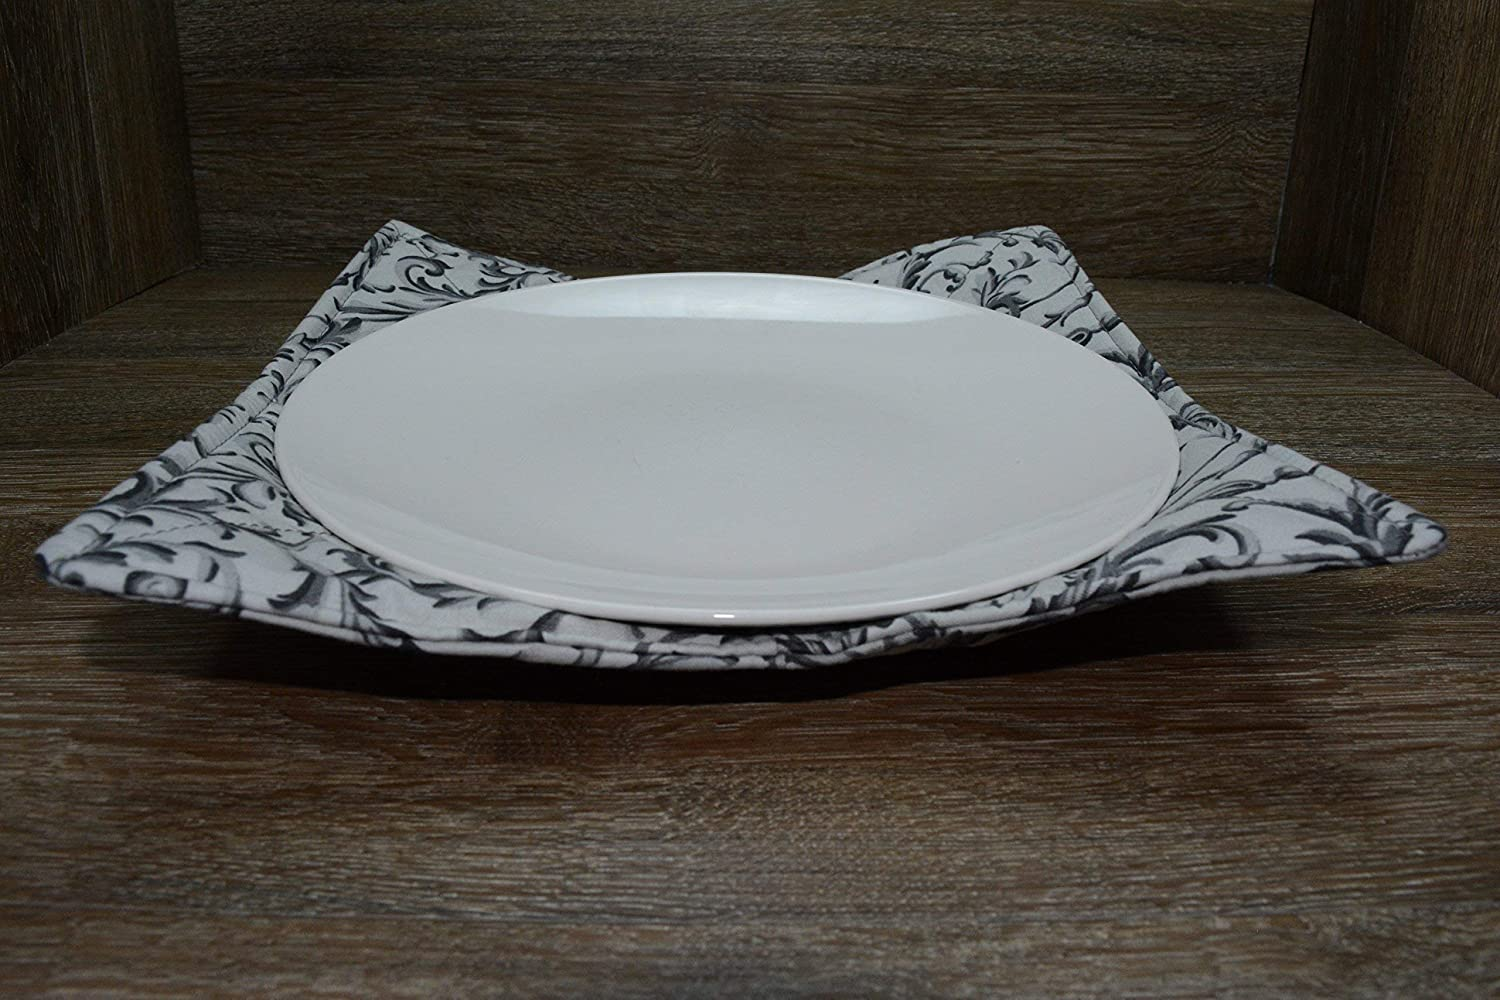 1 Small Bowl Cozy 1 Medium Bowl Cozy and 1 Dinner Plate Cozy Microwave Dish Cozies Set of 3 Shaded Slate